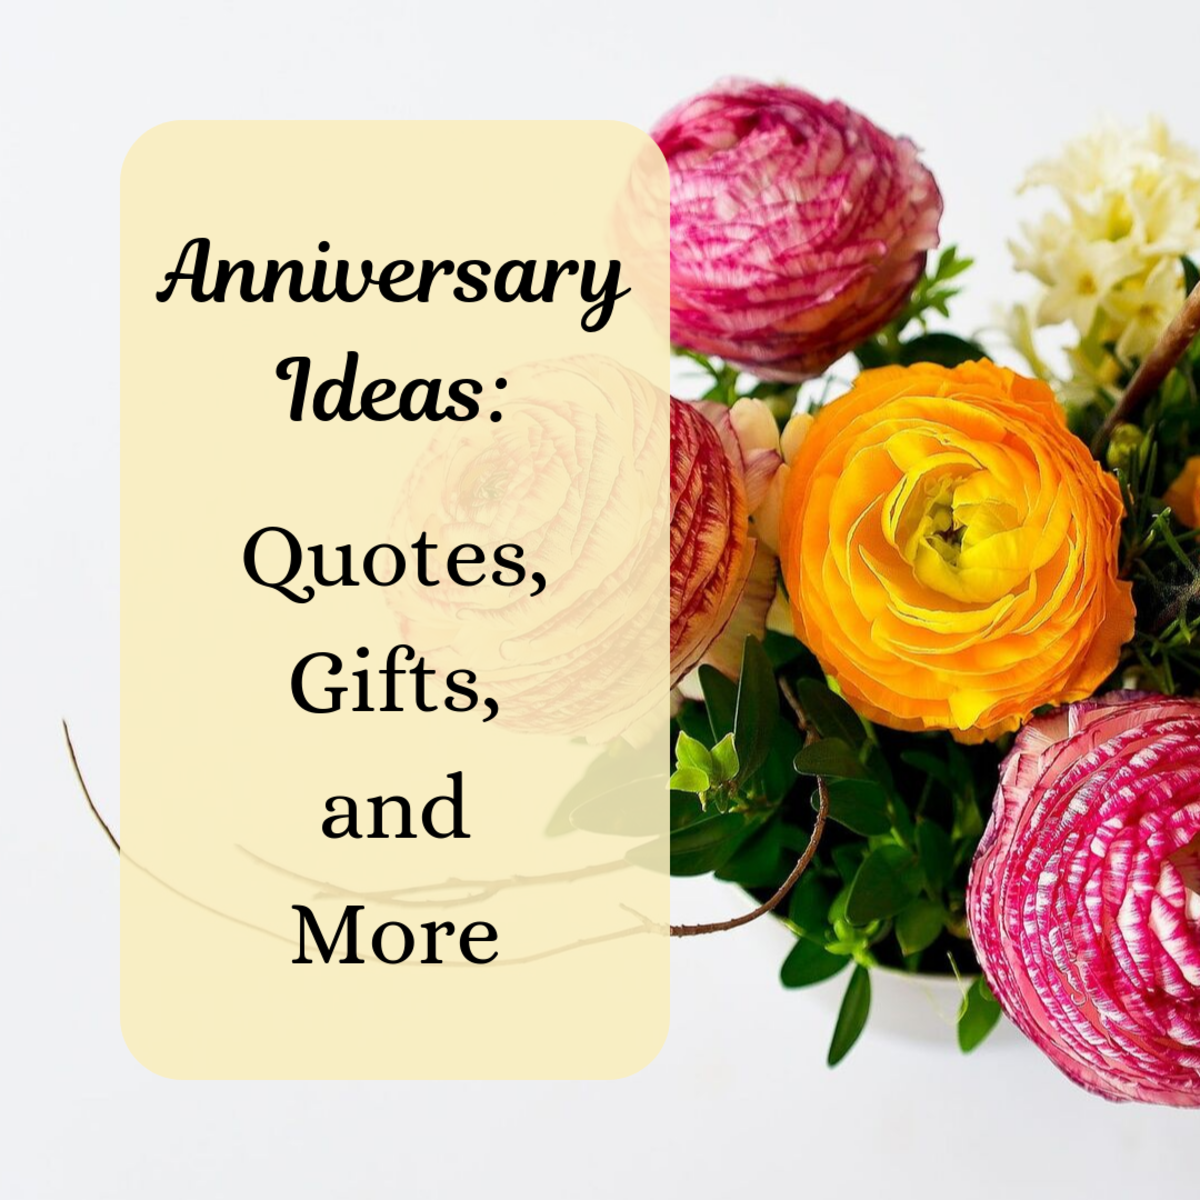 Happy Anniversary Quotes, Sayings, and Gifts